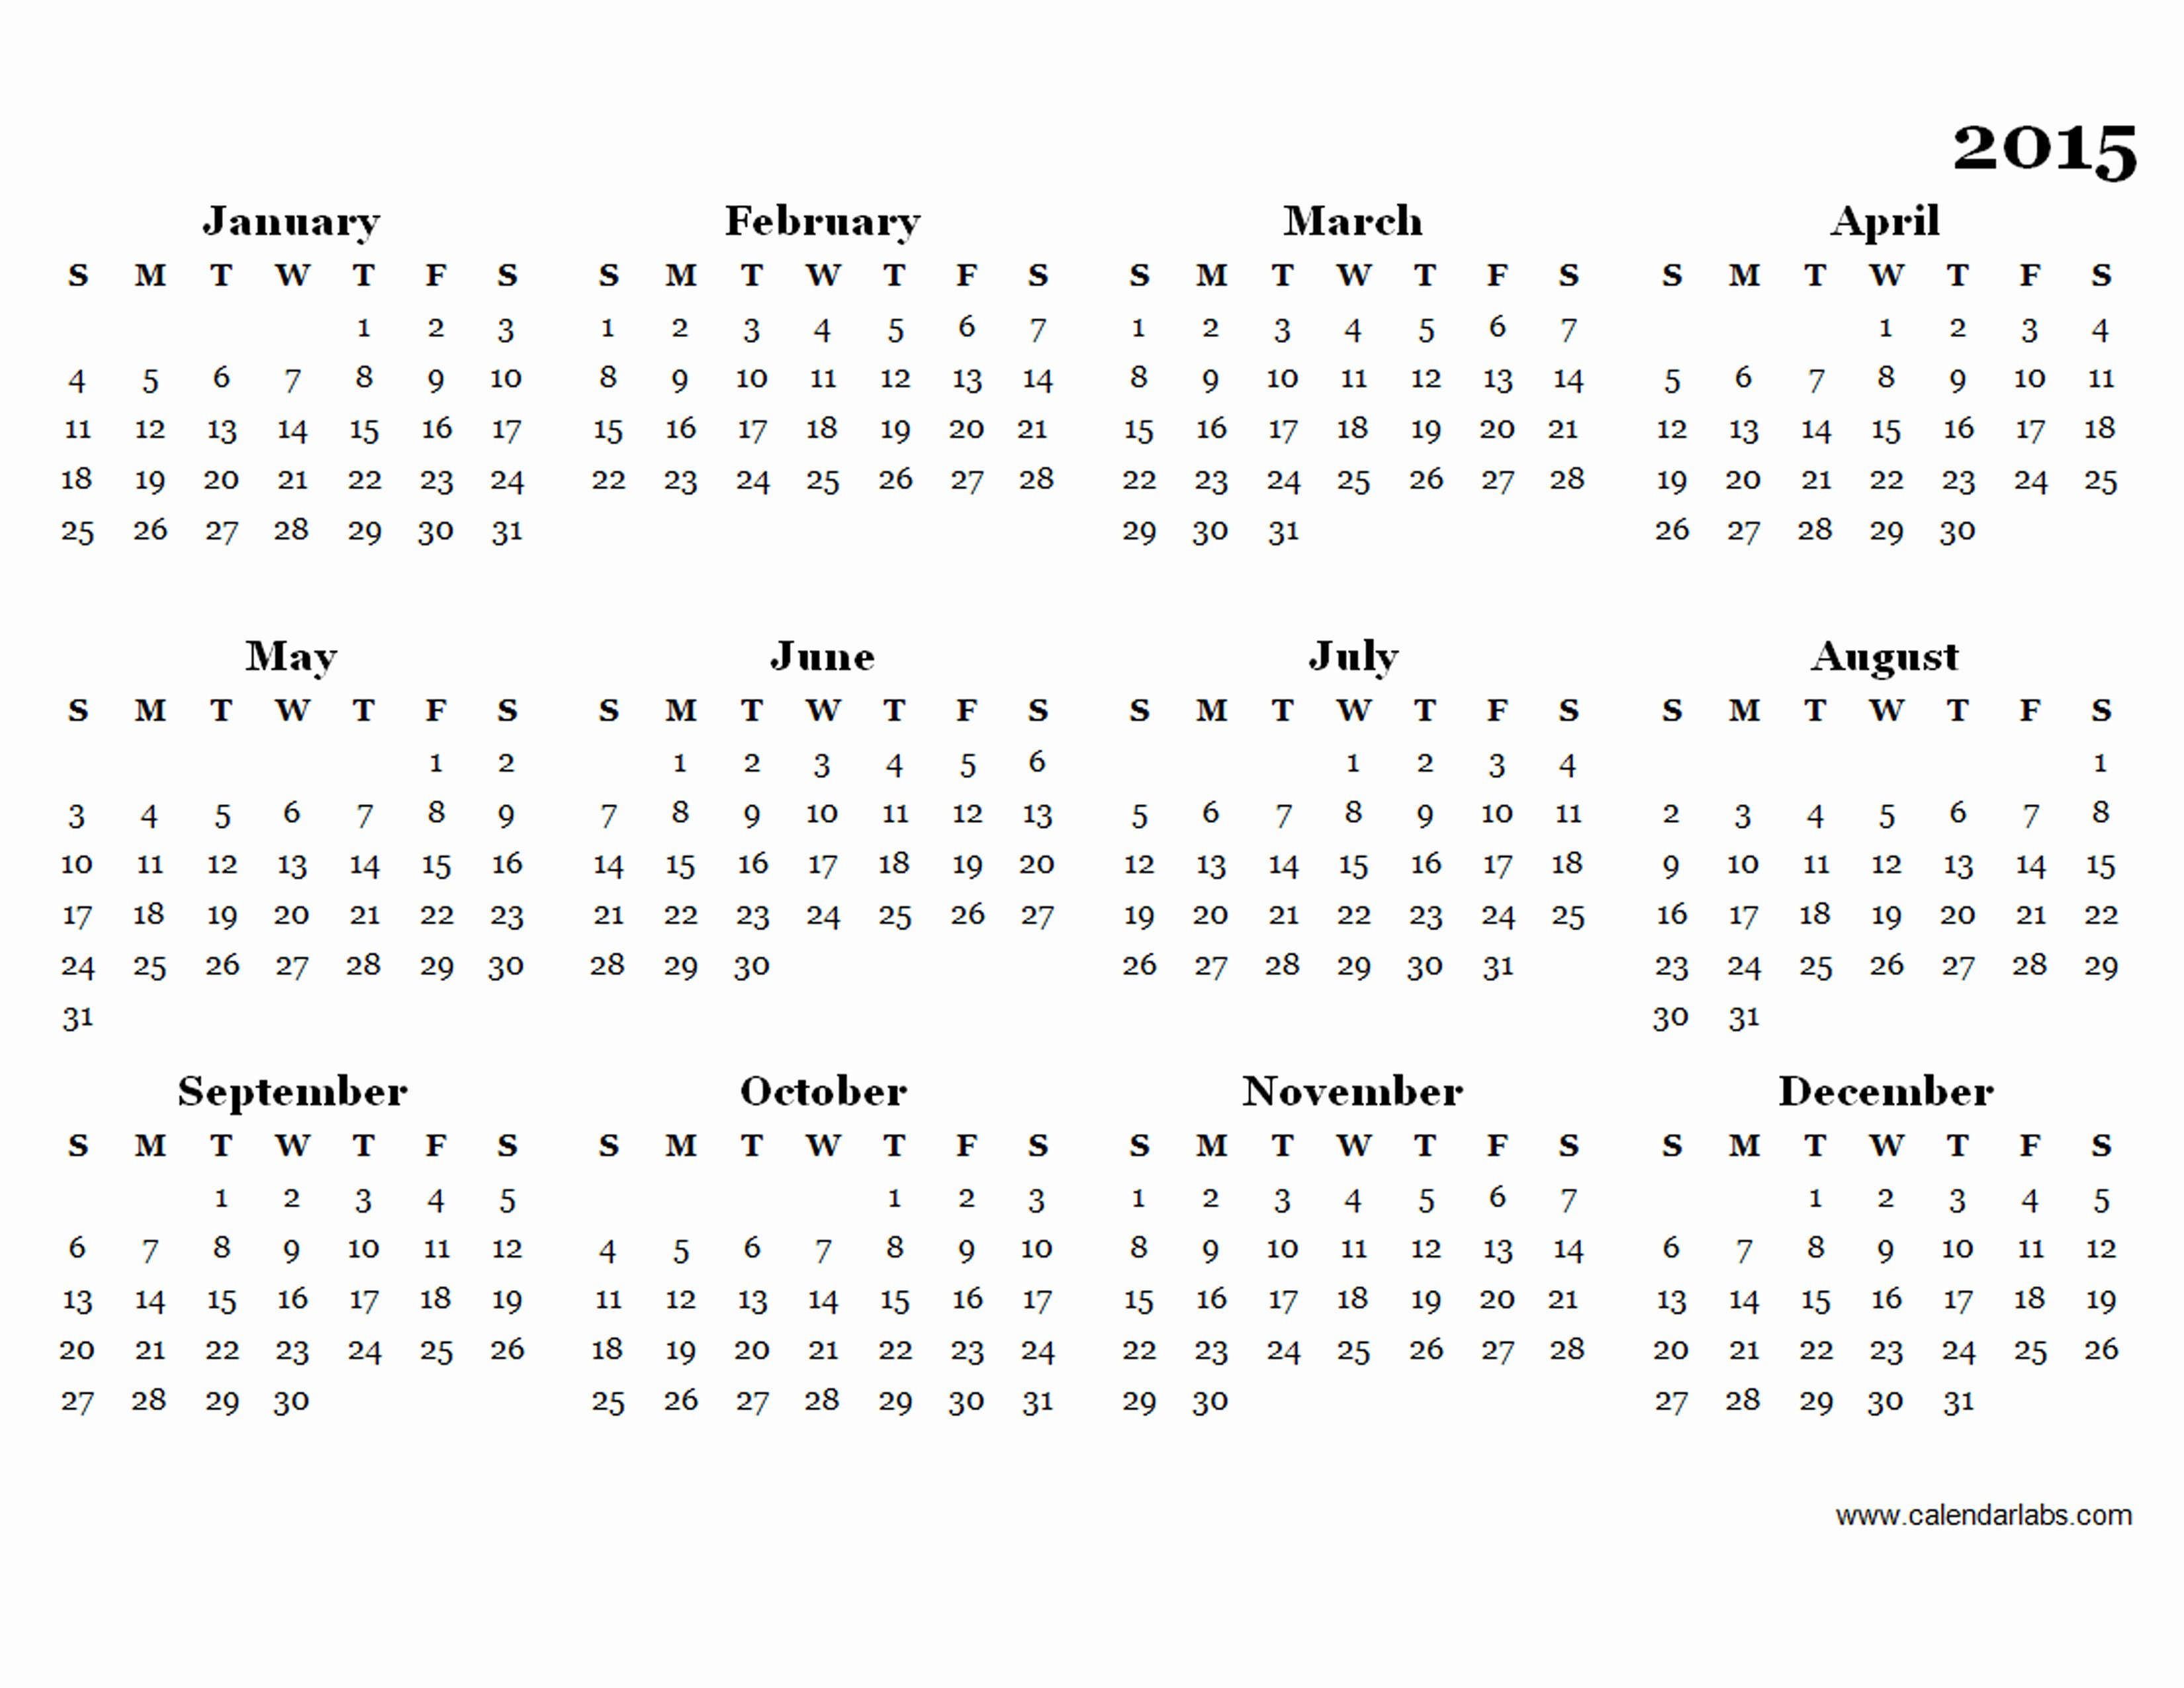 Free Yearly Calendar Templates 2015 Beautiful 2015 Yearly Calendar Template 08 Free Printable Templates